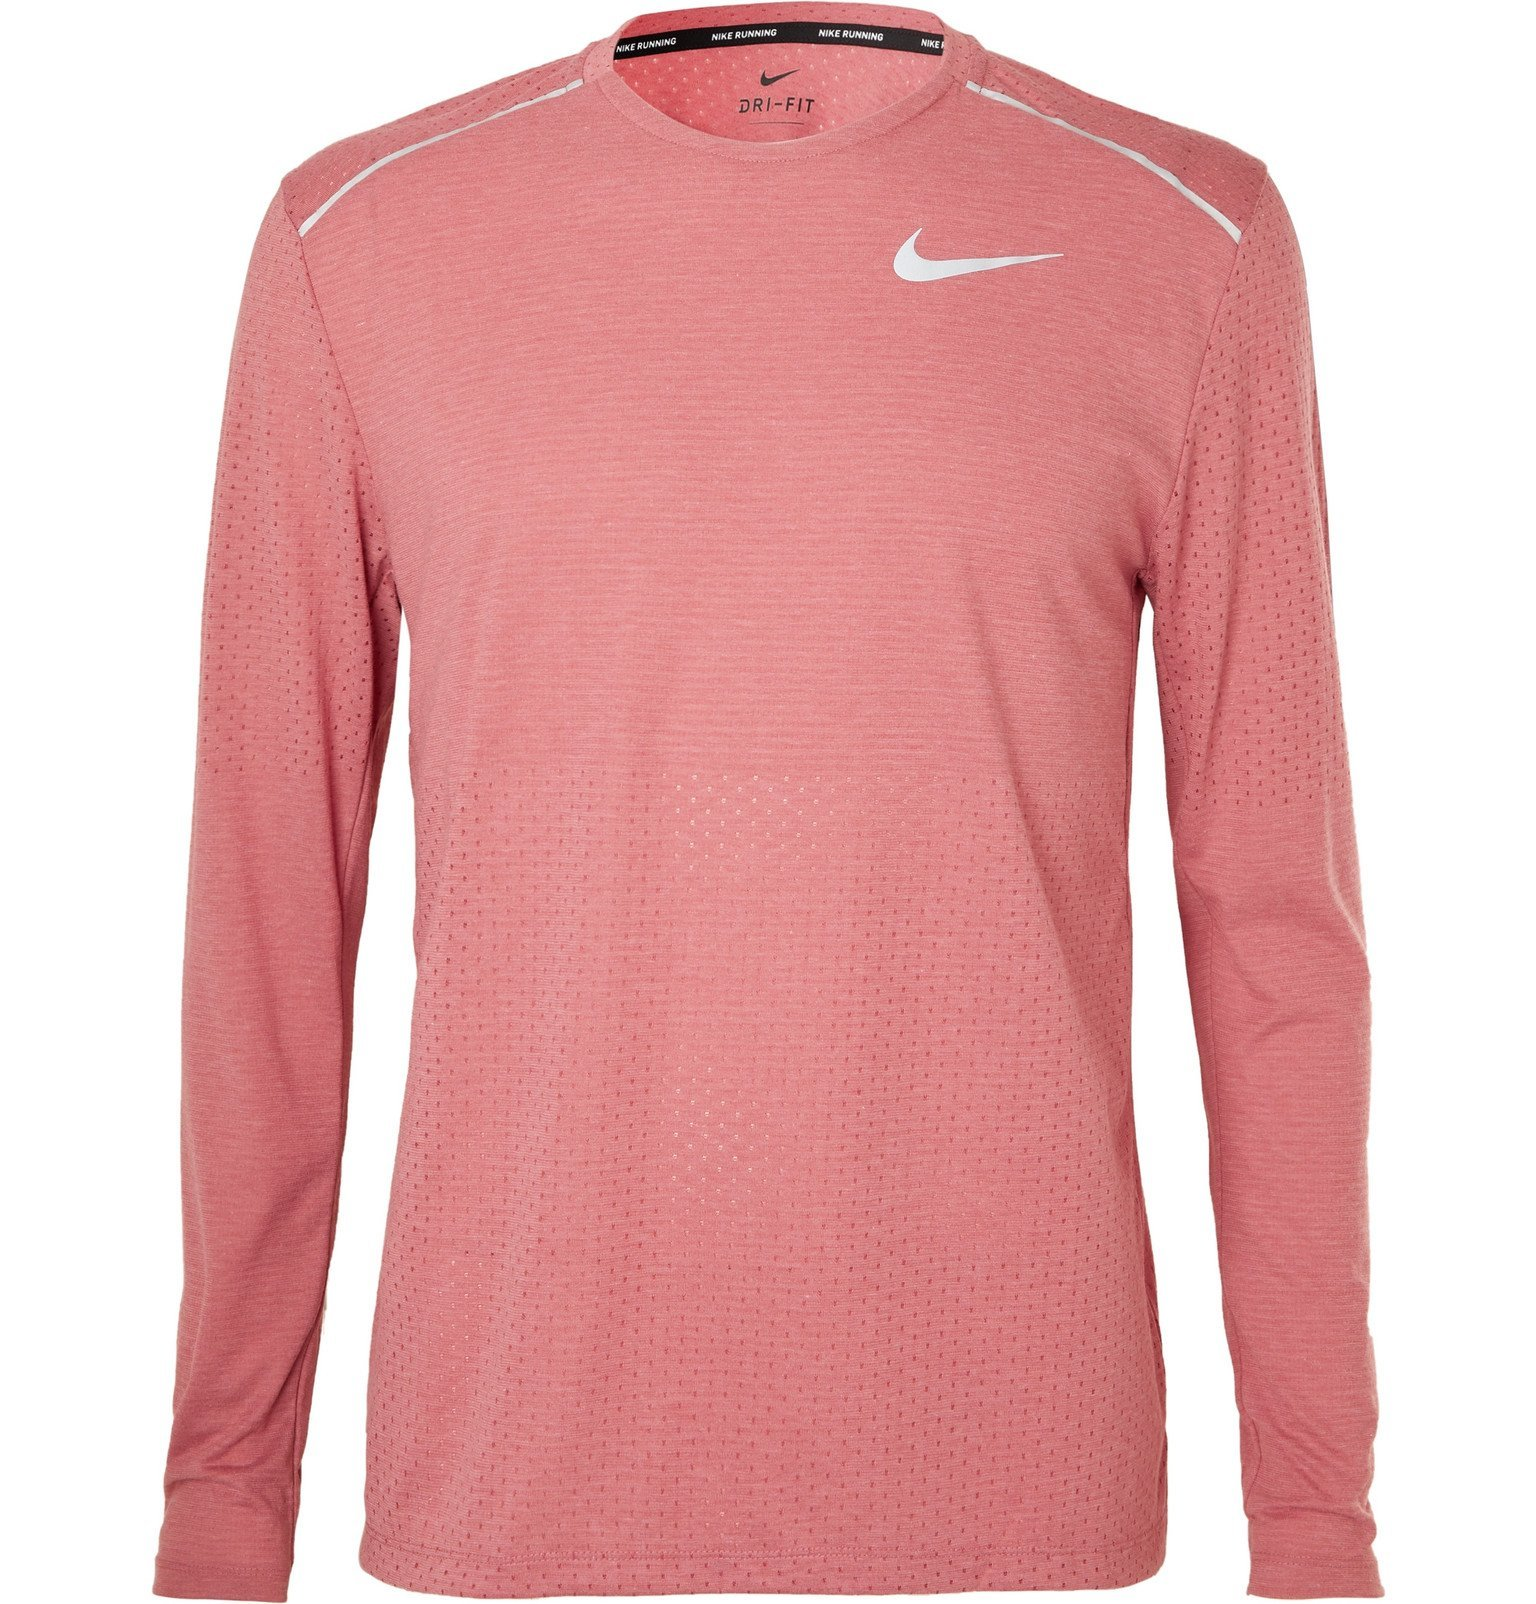 Nike Running - Breathe Rise 365 Perforated Mélange Dri-FIT T-Shirt - Pink